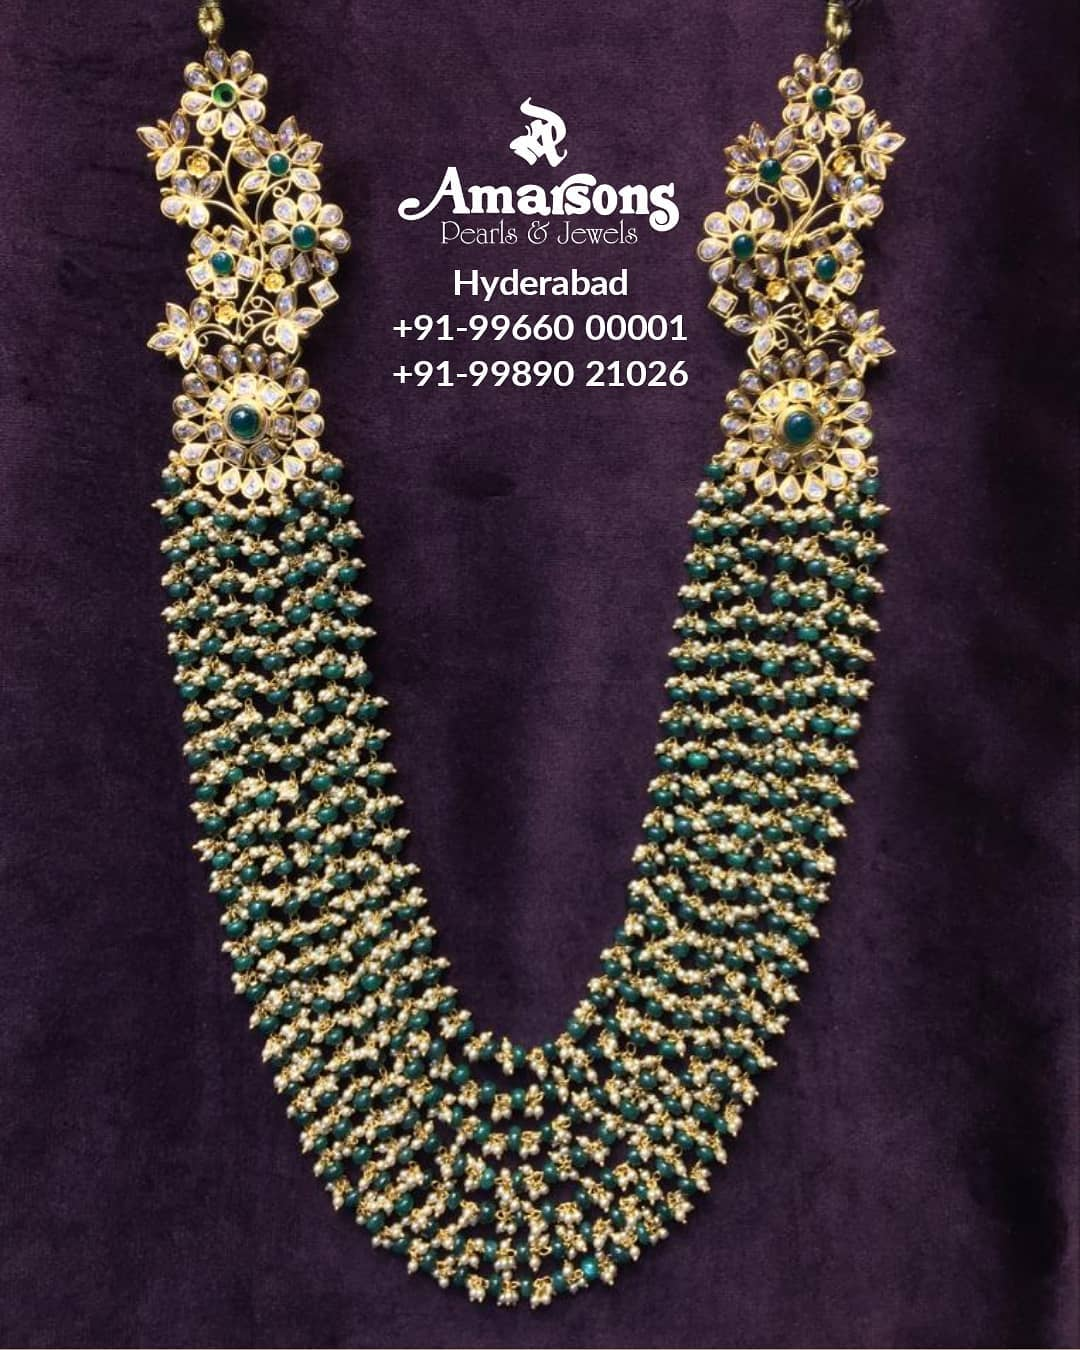 light-weight-necklace-with-pearls-swarovski-stone